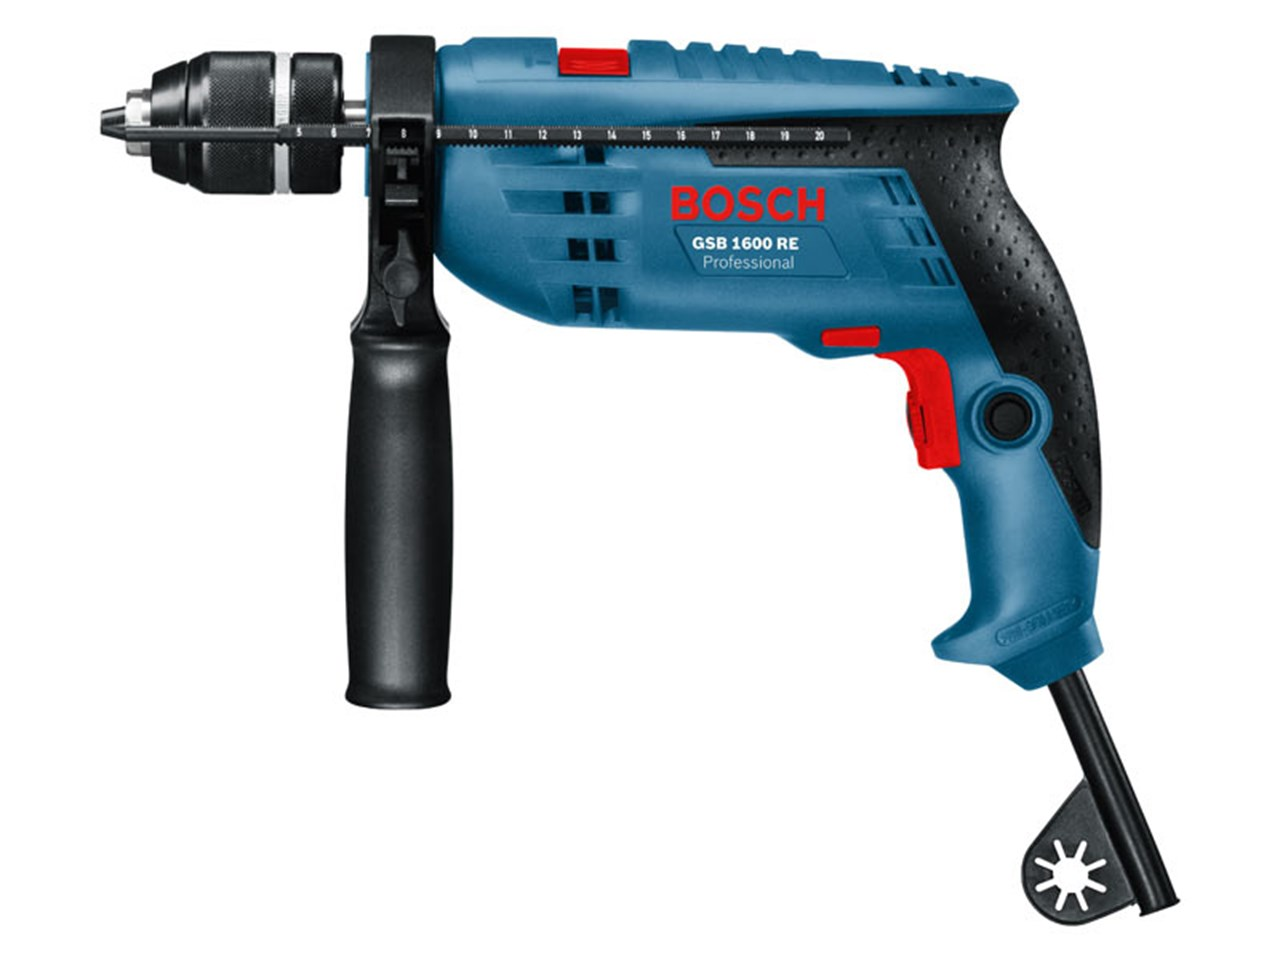 bosch gsb 1600 re professional impact drill 240v. Black Bedroom Furniture Sets. Home Design Ideas